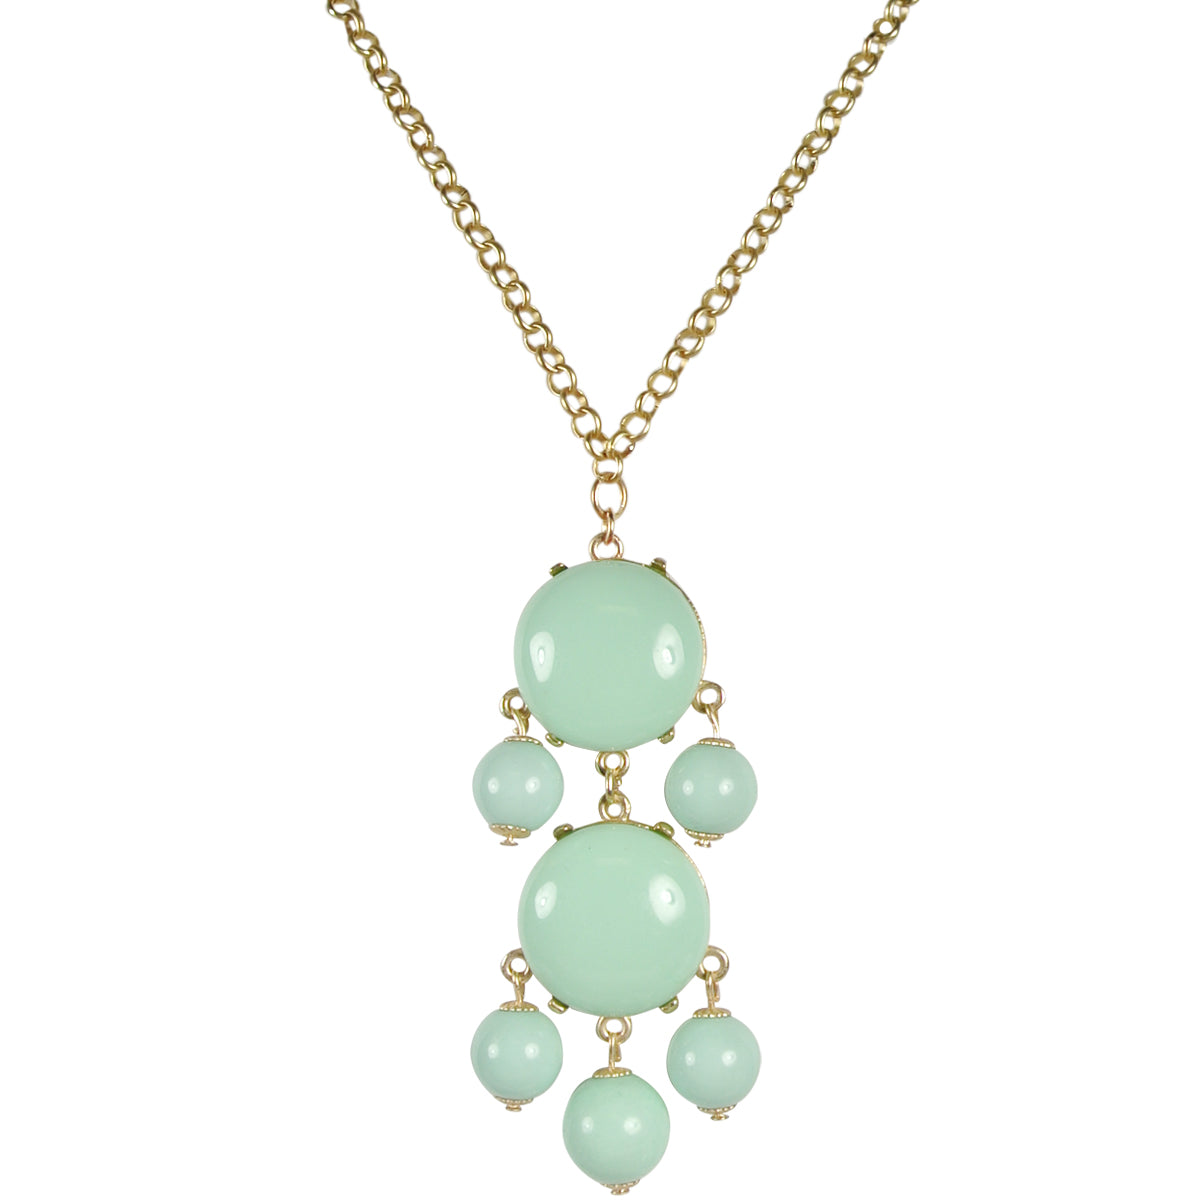 Mint Green Beaded Bubble Pendant Necklace + White Drop Stone Necklace [A63876, A64562]